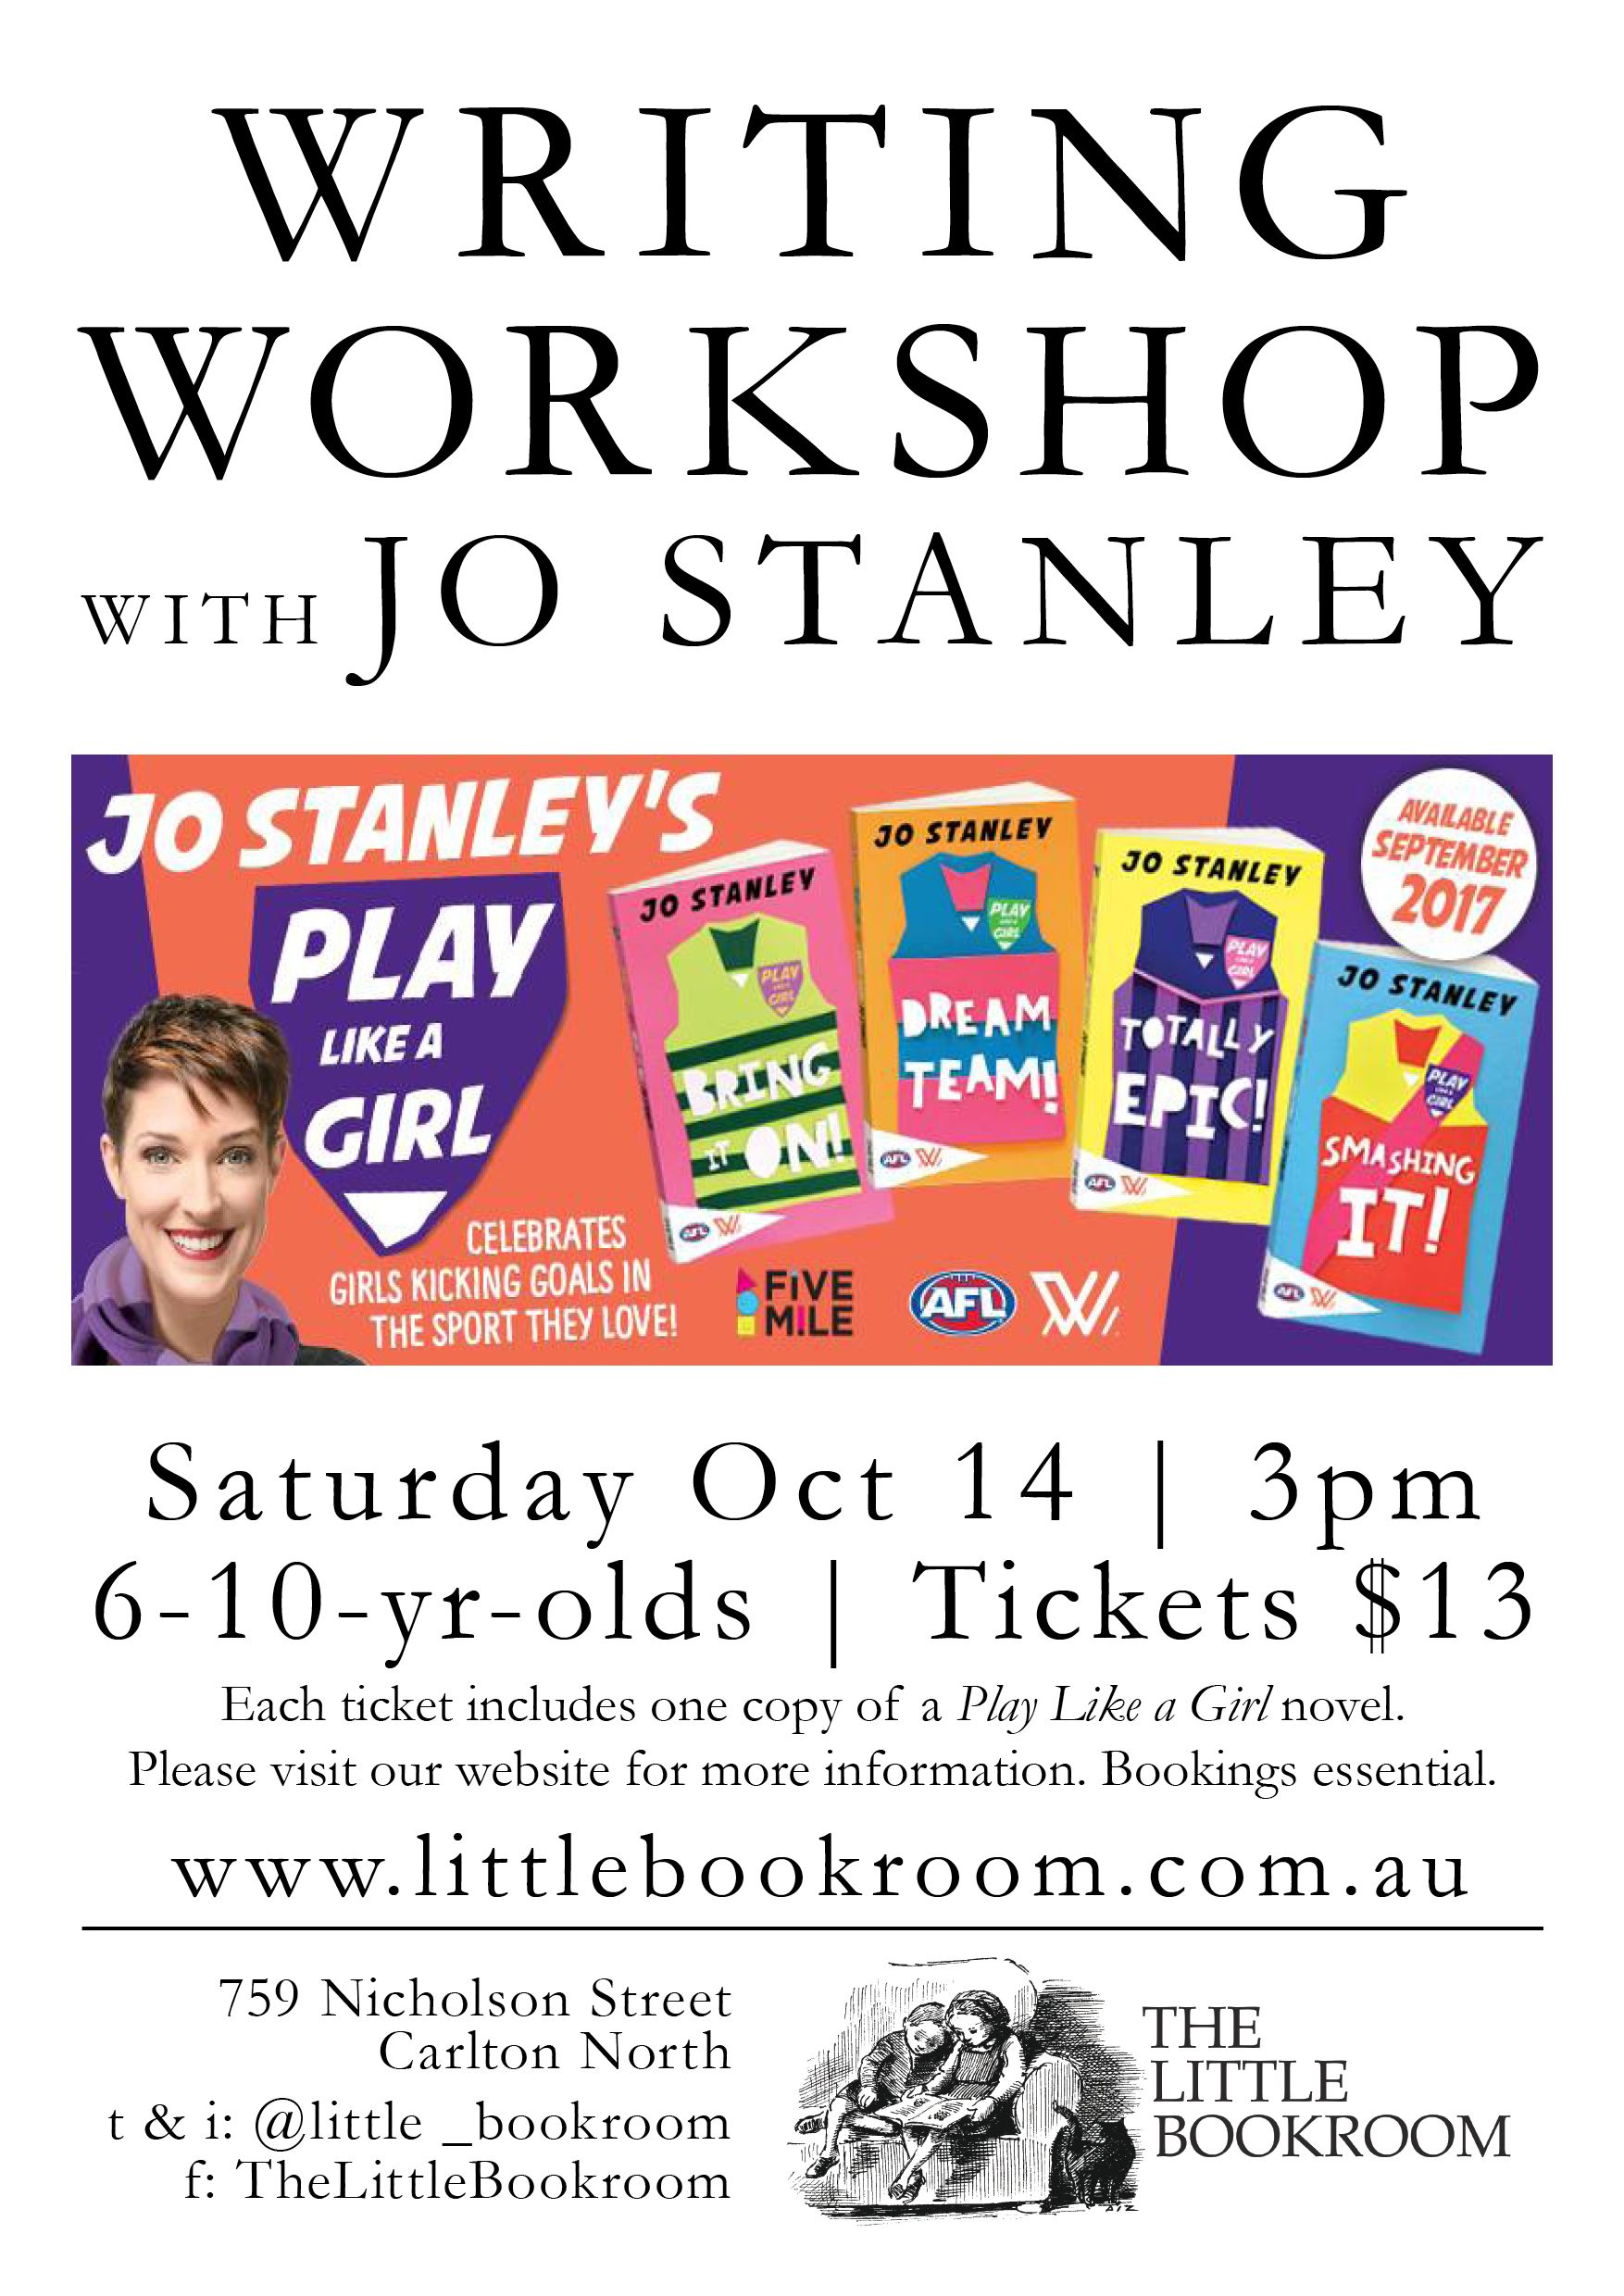 Writing Workshop with Jo Stanley Saturday October 14th 3pm - $13